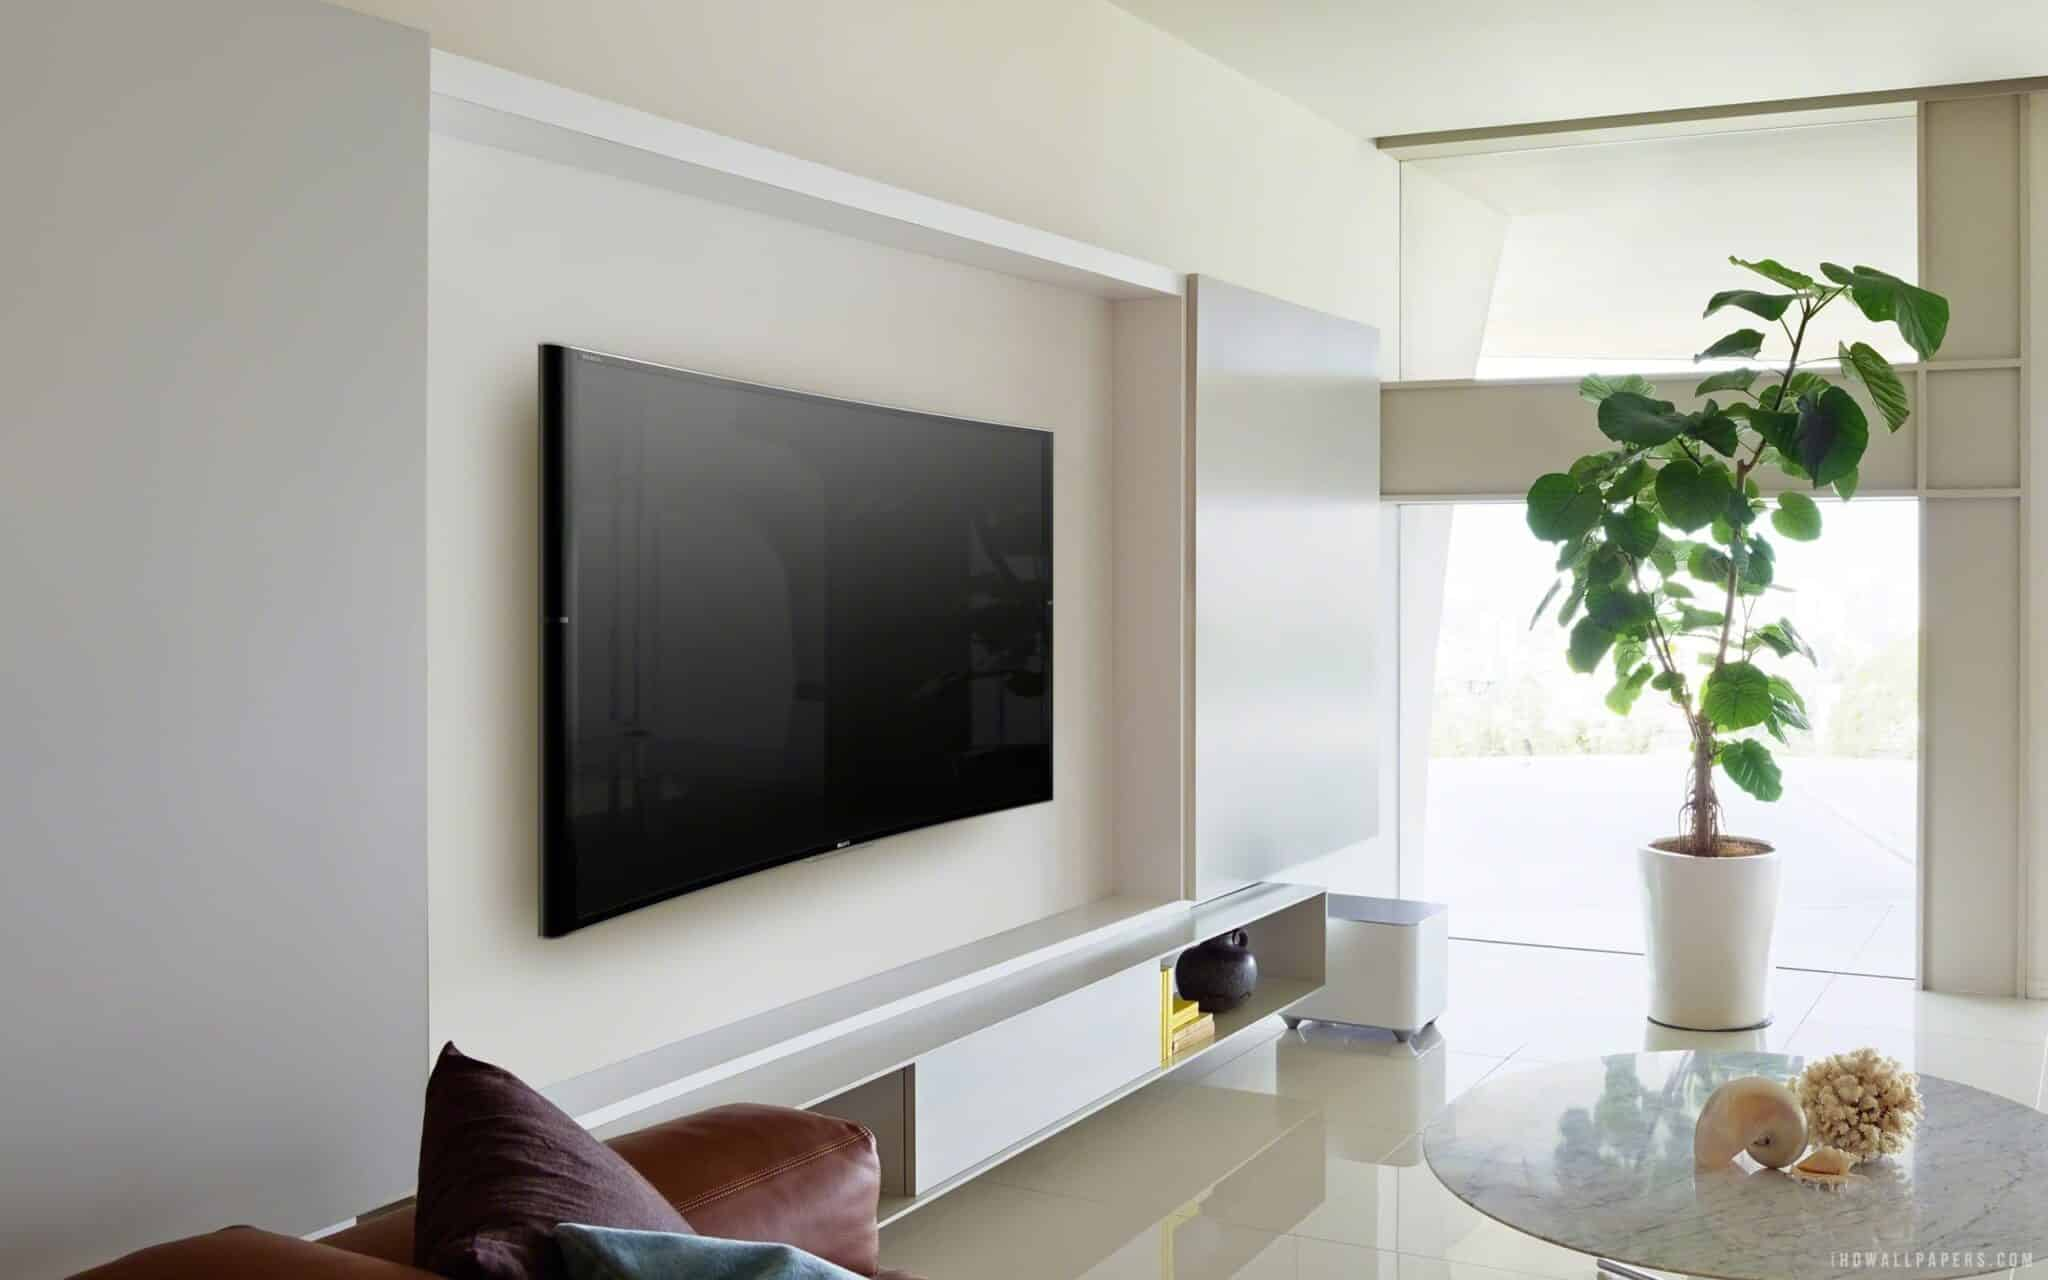 North Scottsdale custom TV and home theater installation by Modern TV & Audio